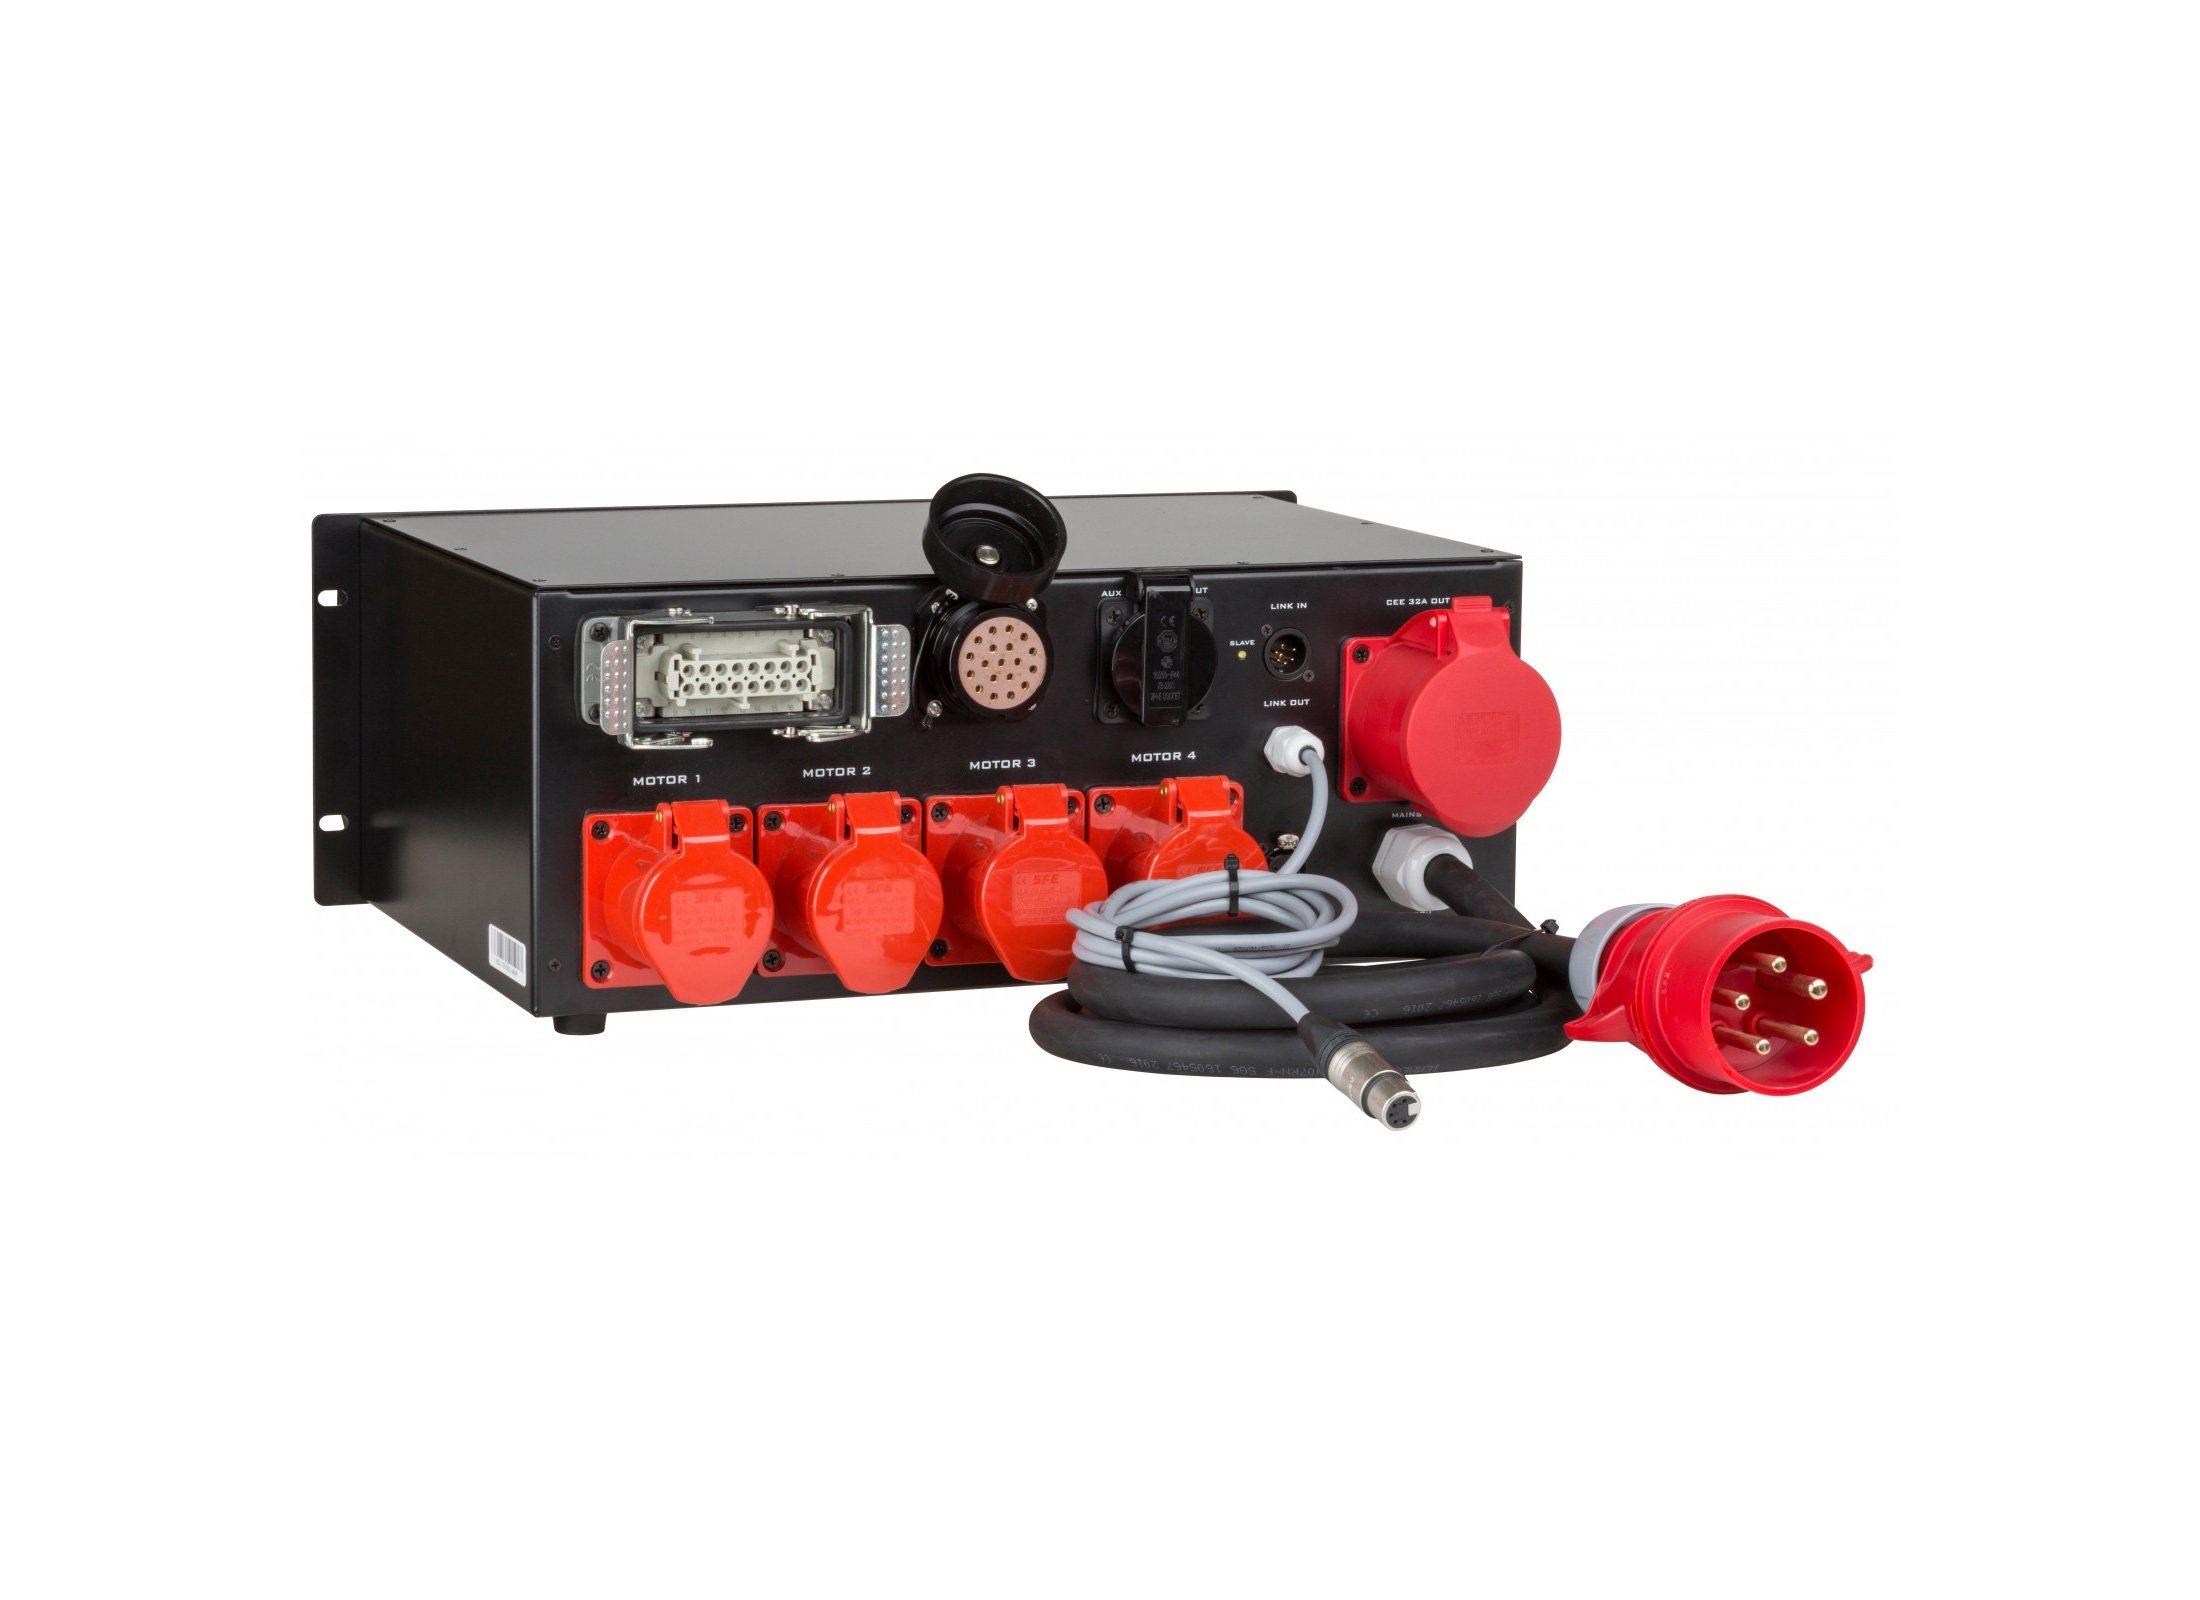 Briteq RICO-V4 Motorcontroller Online At Low Prices At Huss Light ...